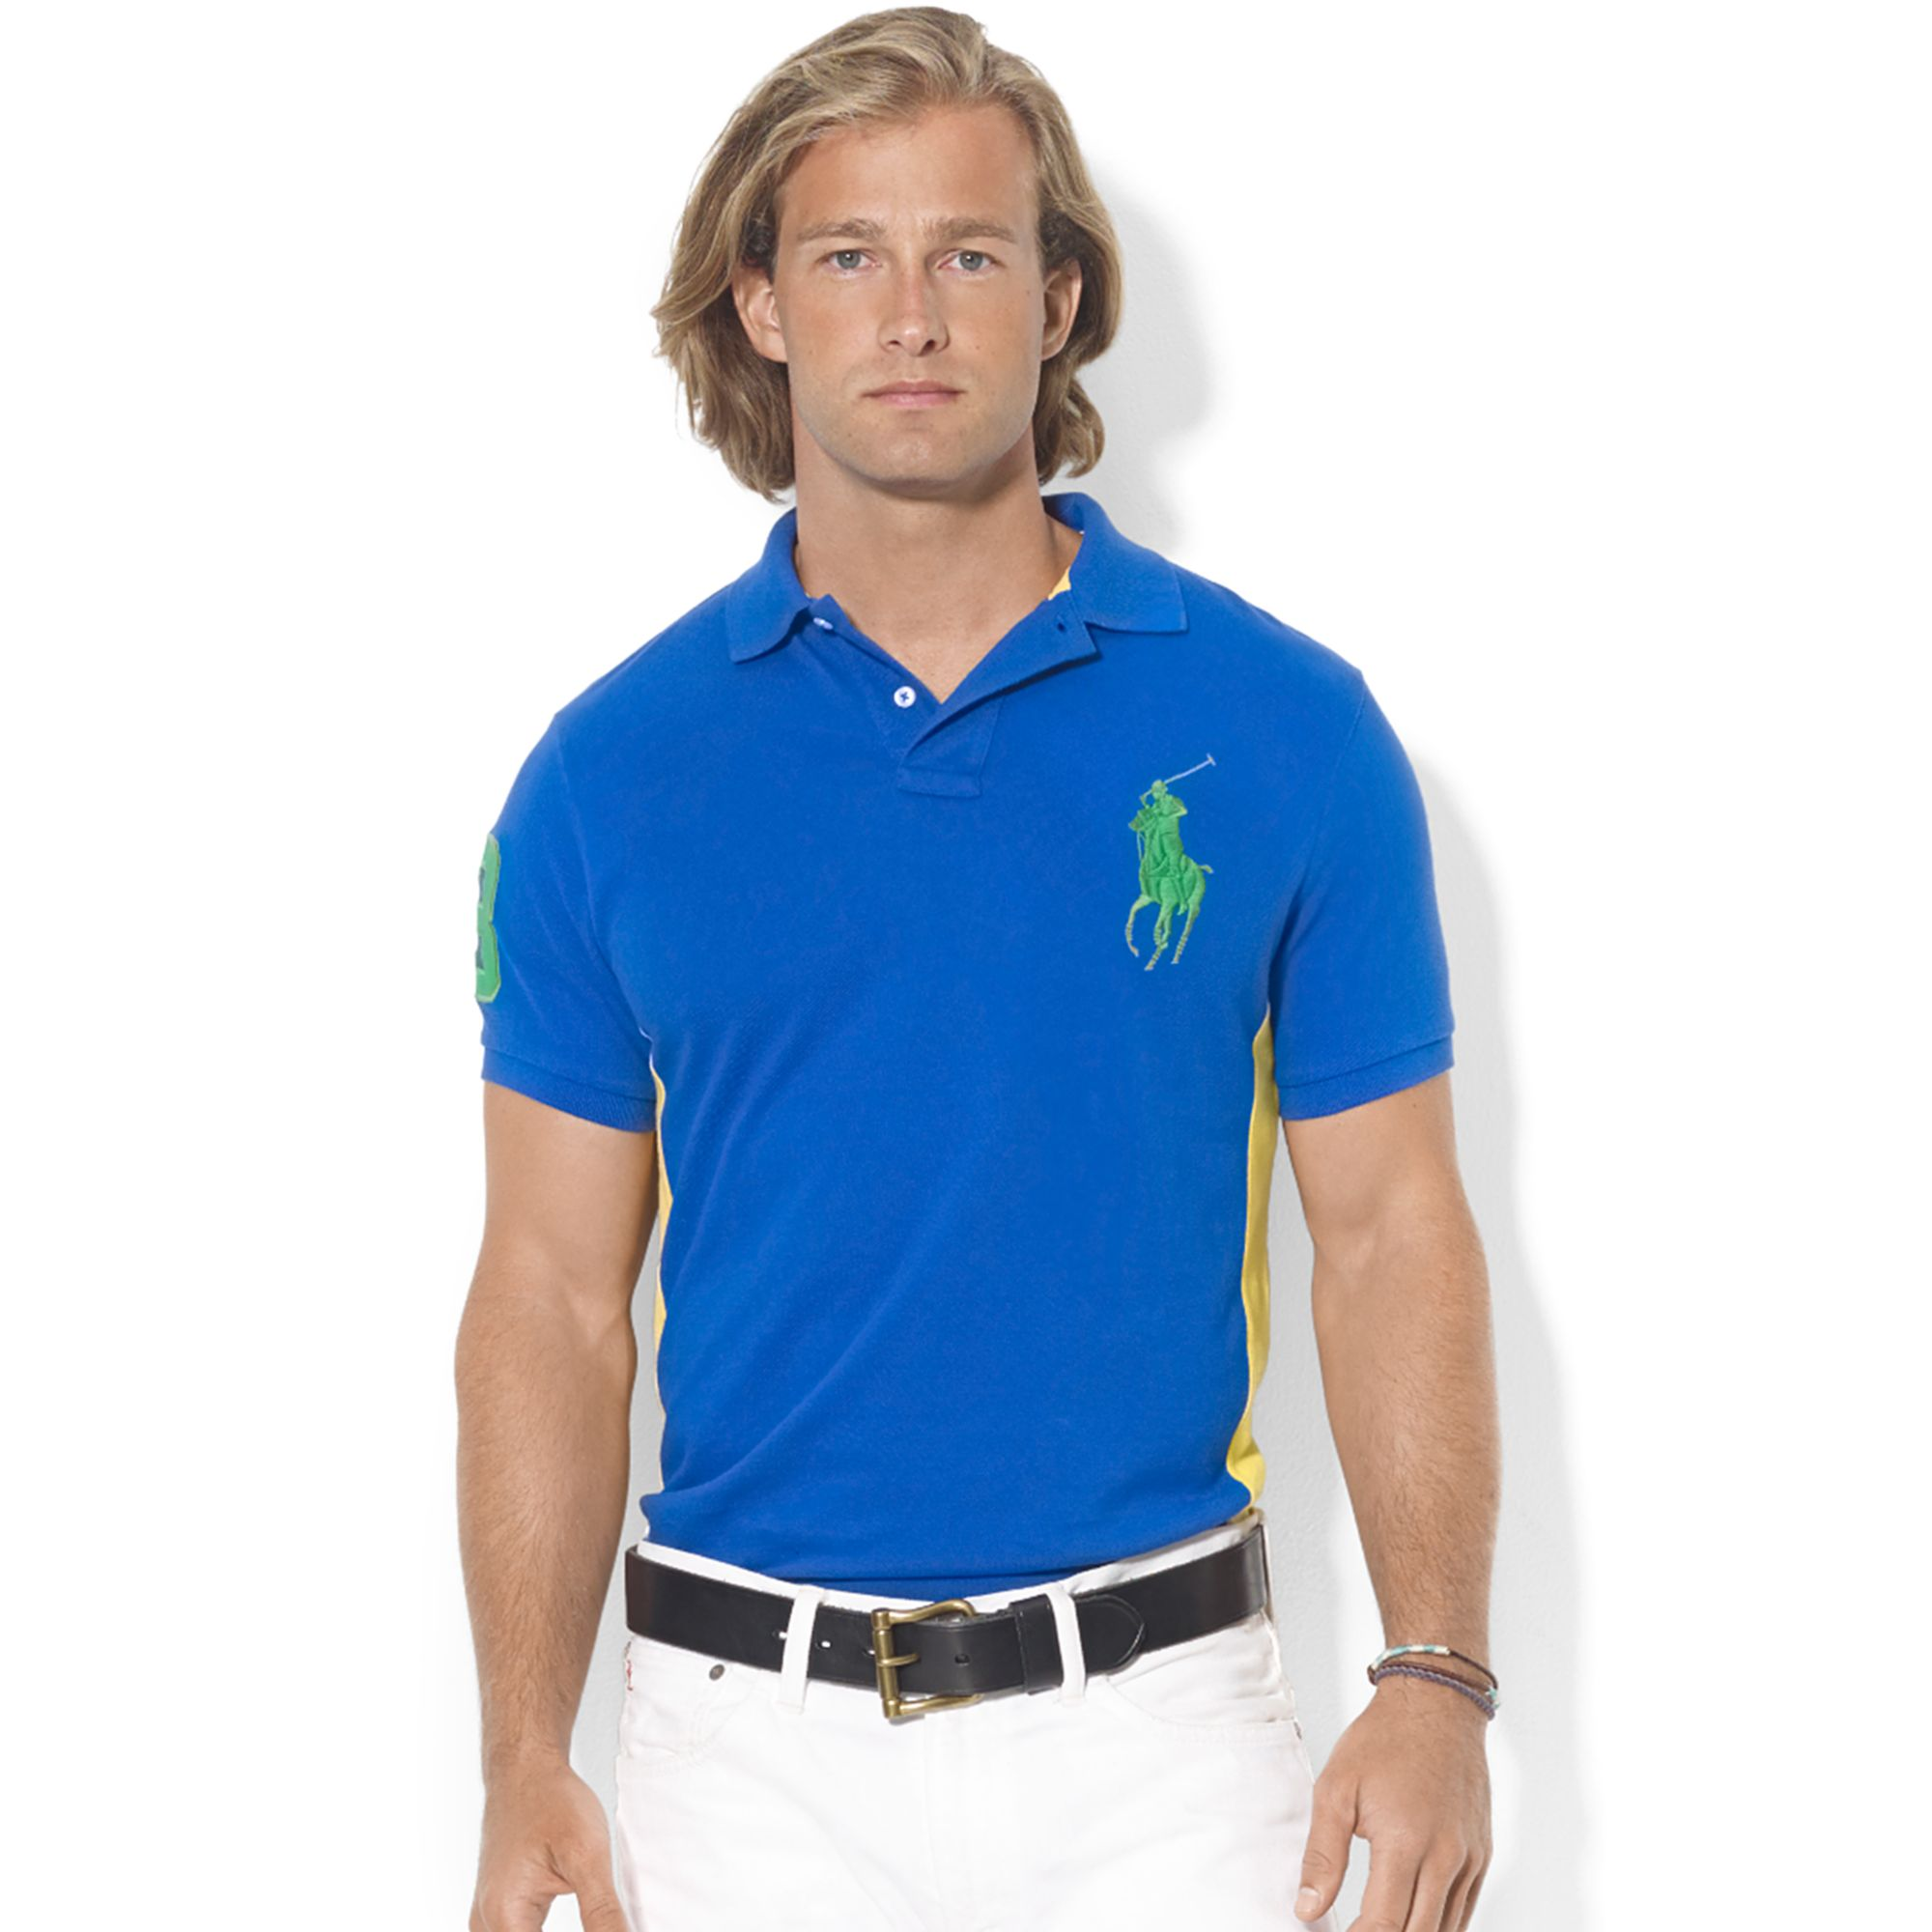 Ralph lauren custom fit colorblocked big pony mesh polo in for Ralph lauren custom fit mesh polo shirt